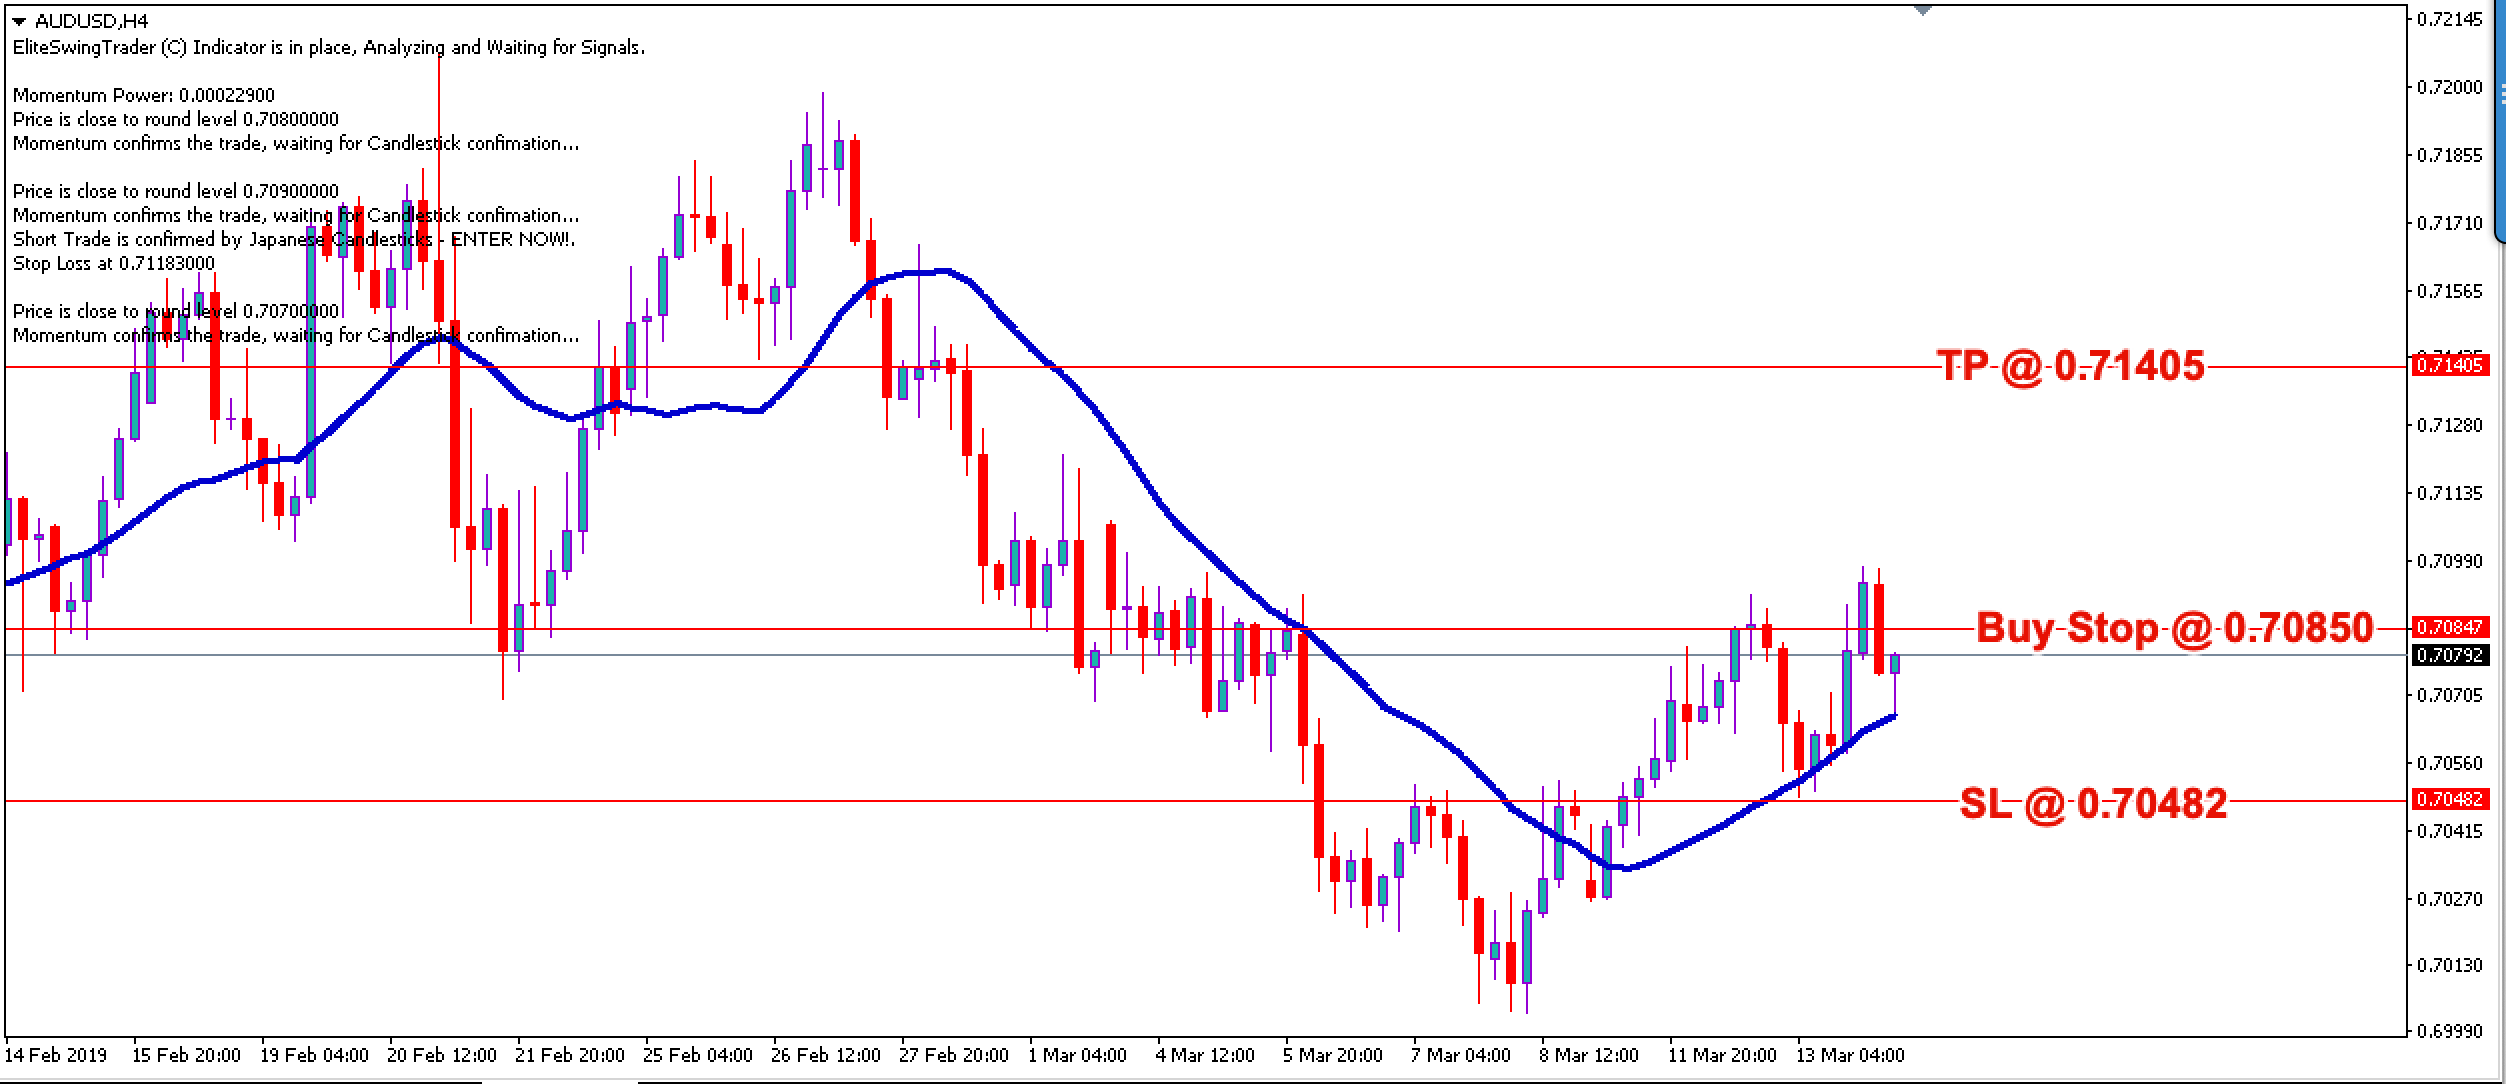 Swing Trading Strategy AUDUSD – 14th March 2019